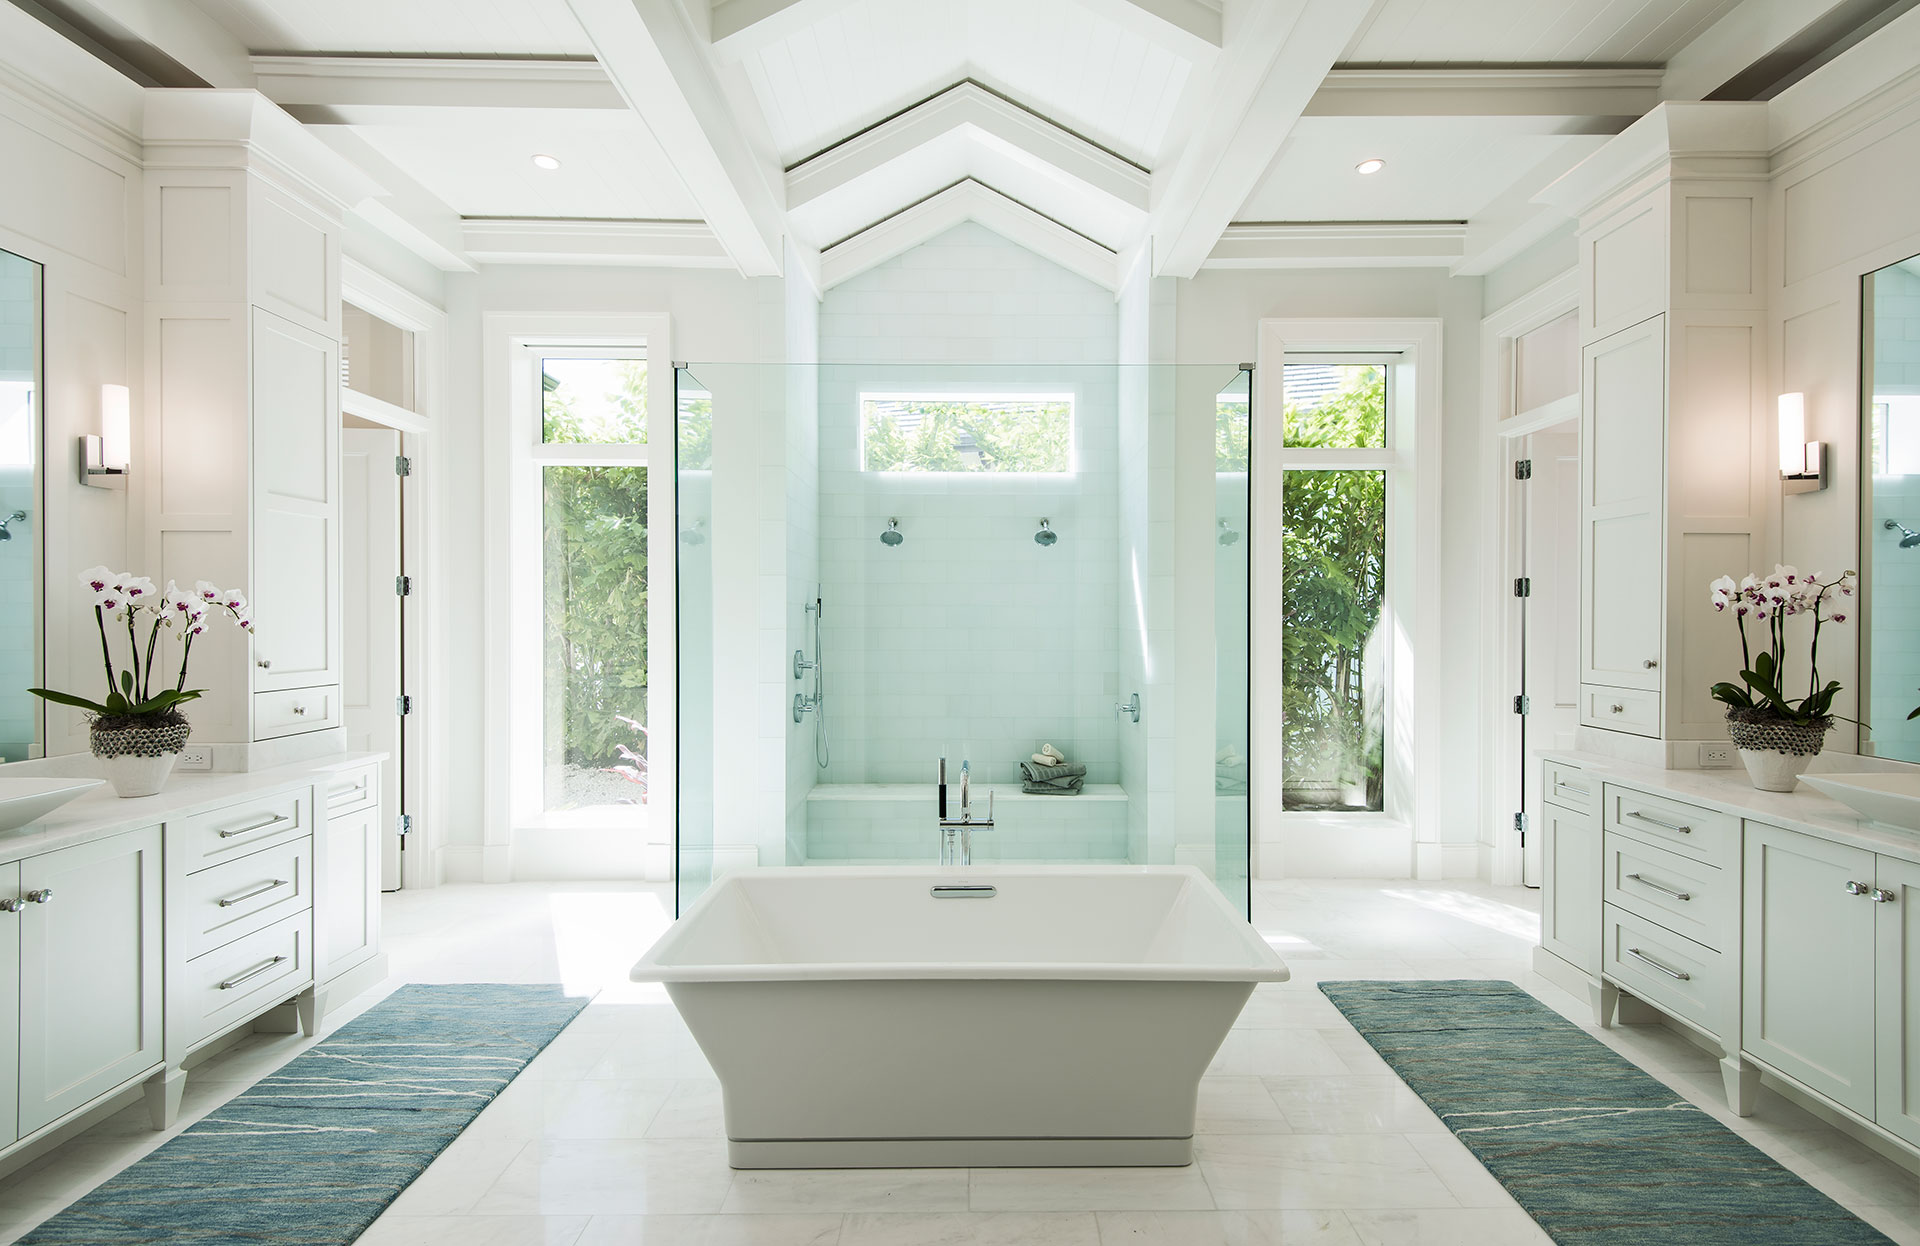 Calusa bay design florida design magazine creating for Florida bathroom designs